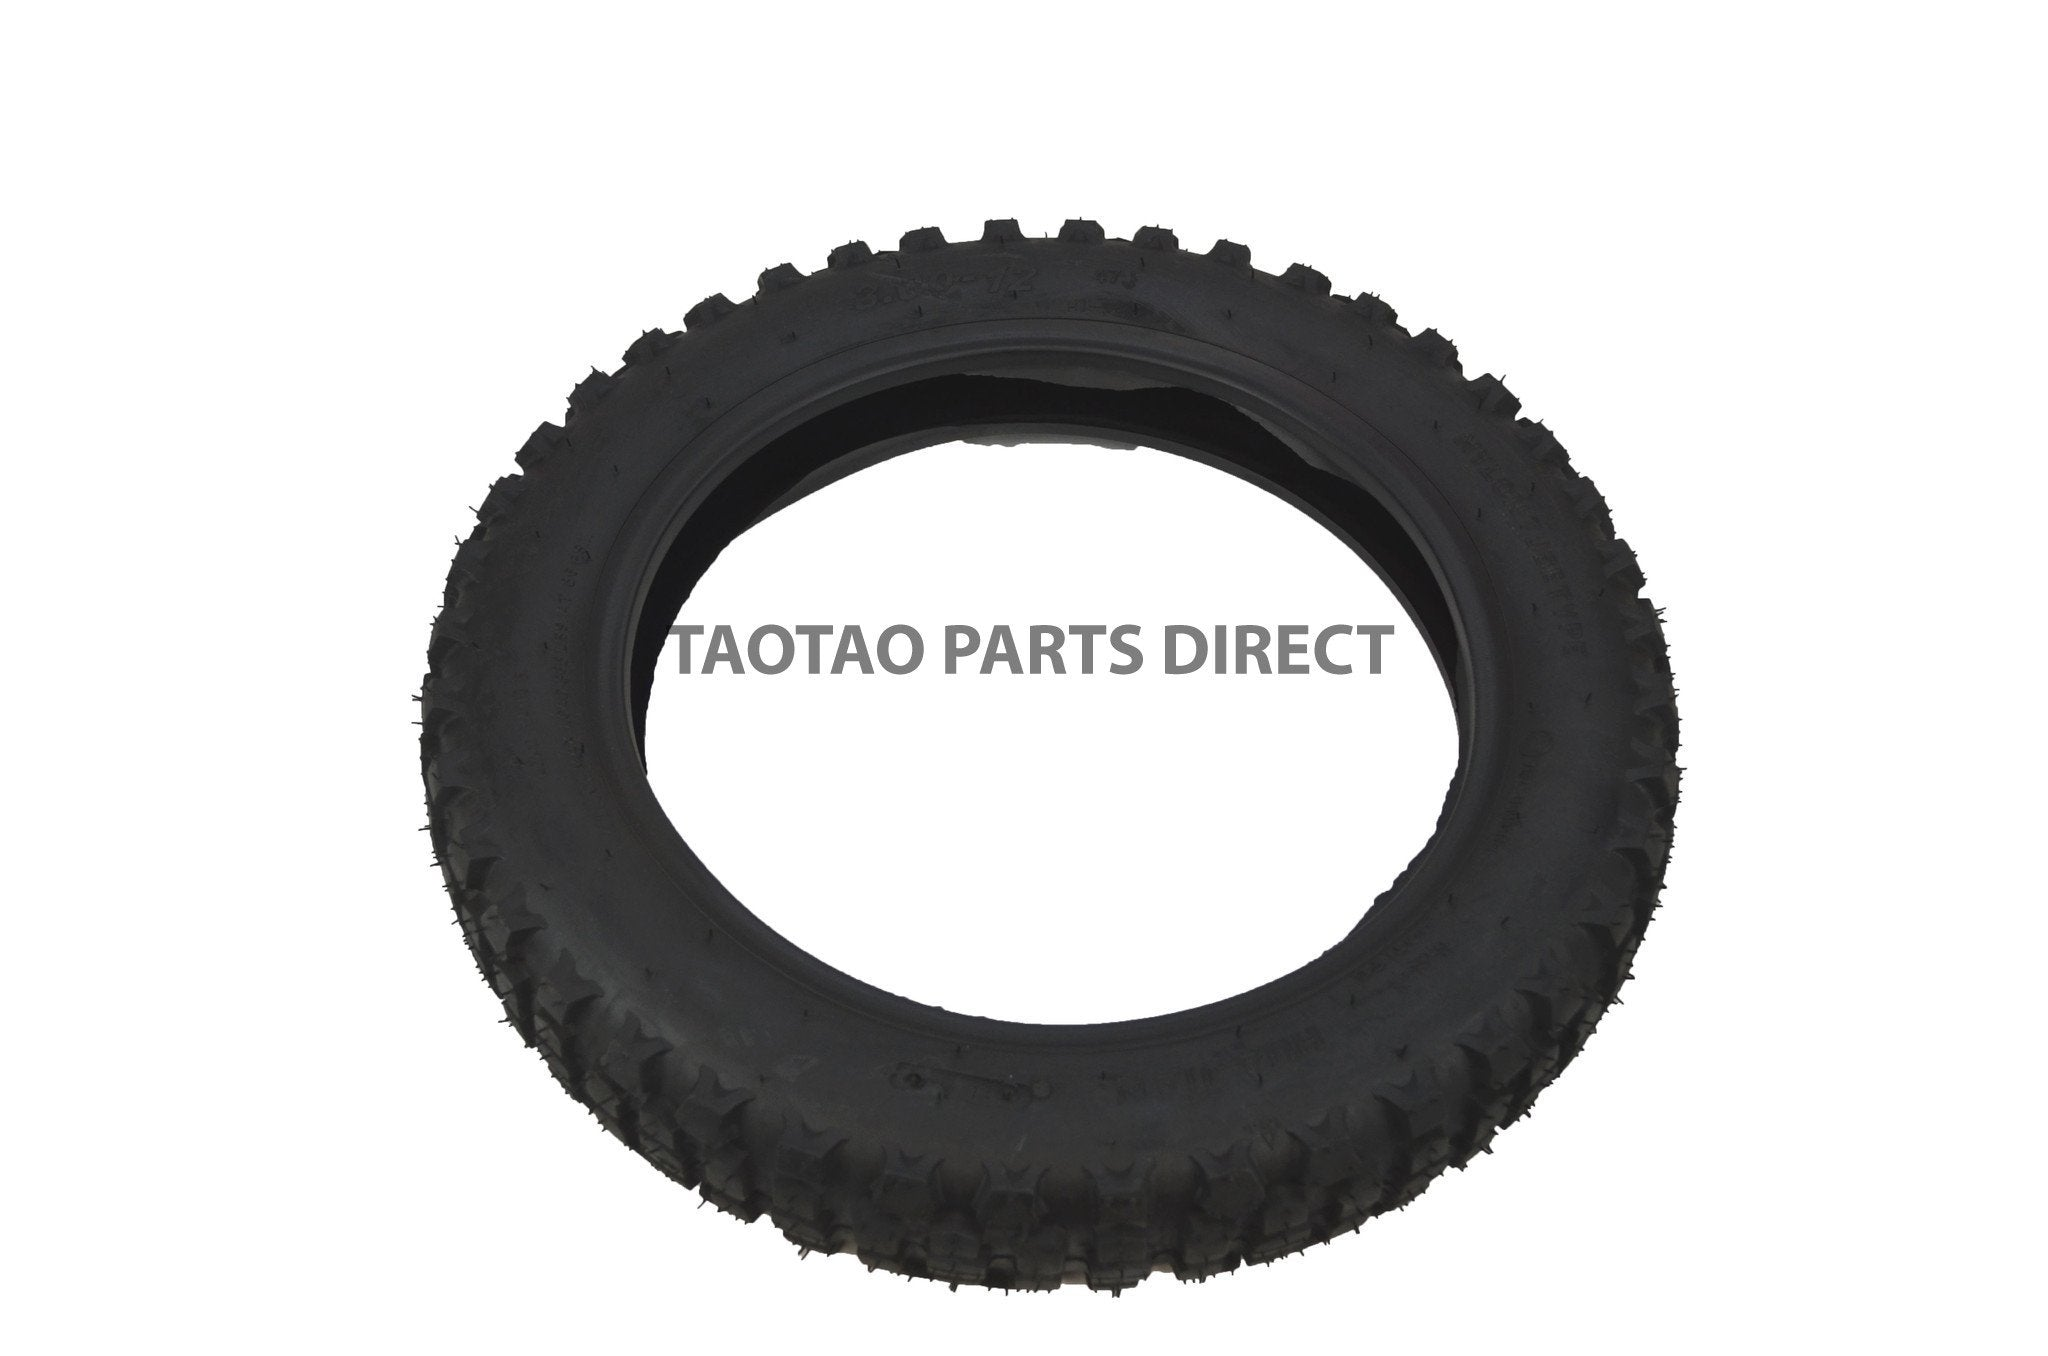 3.00-12 Tire - TaoTaoPartsDirect.com